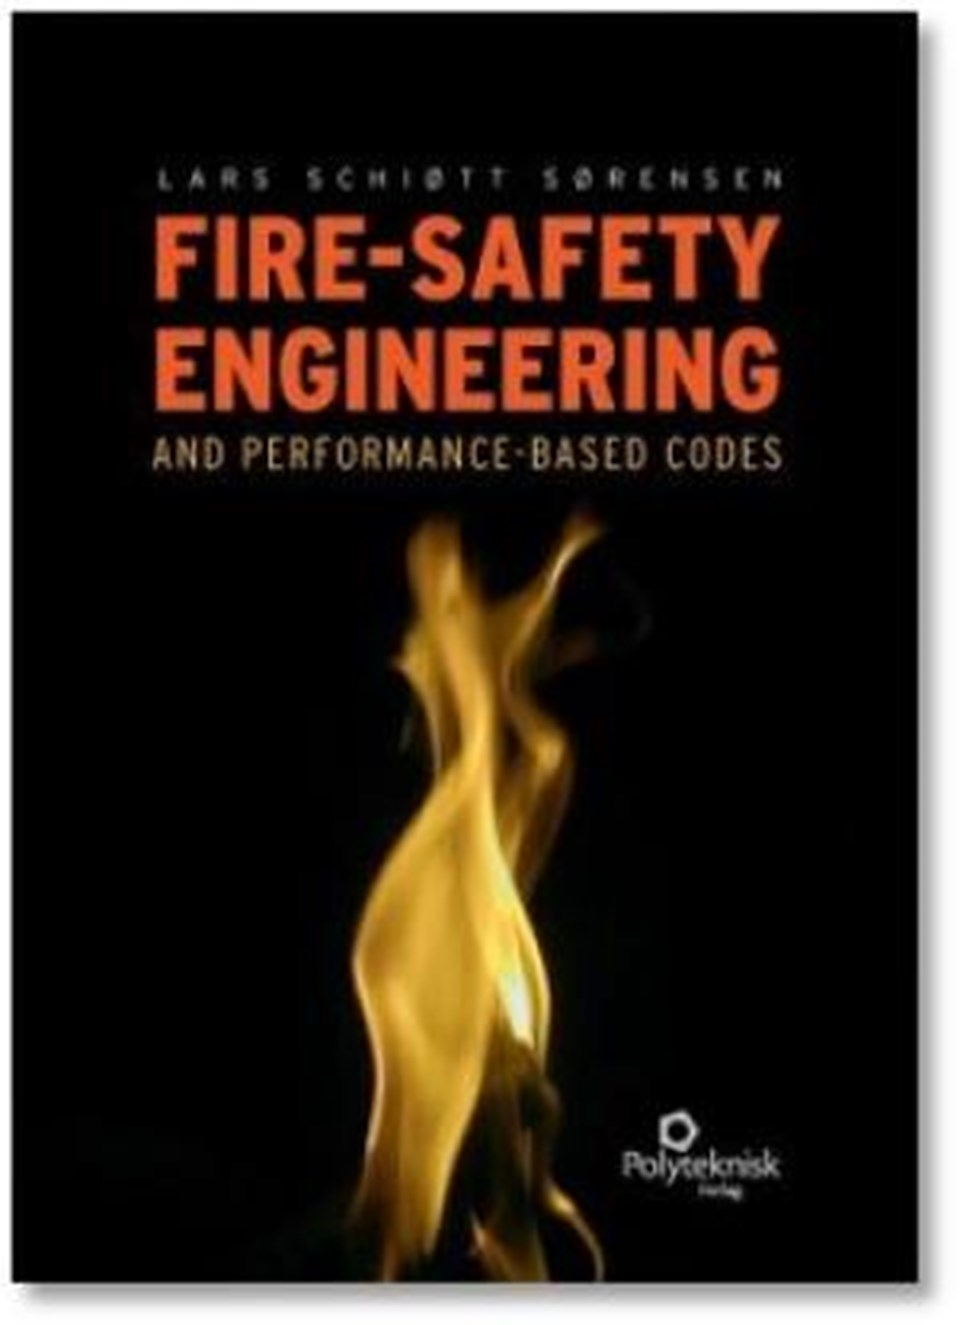 Fire-safety engineering and performancebased codes